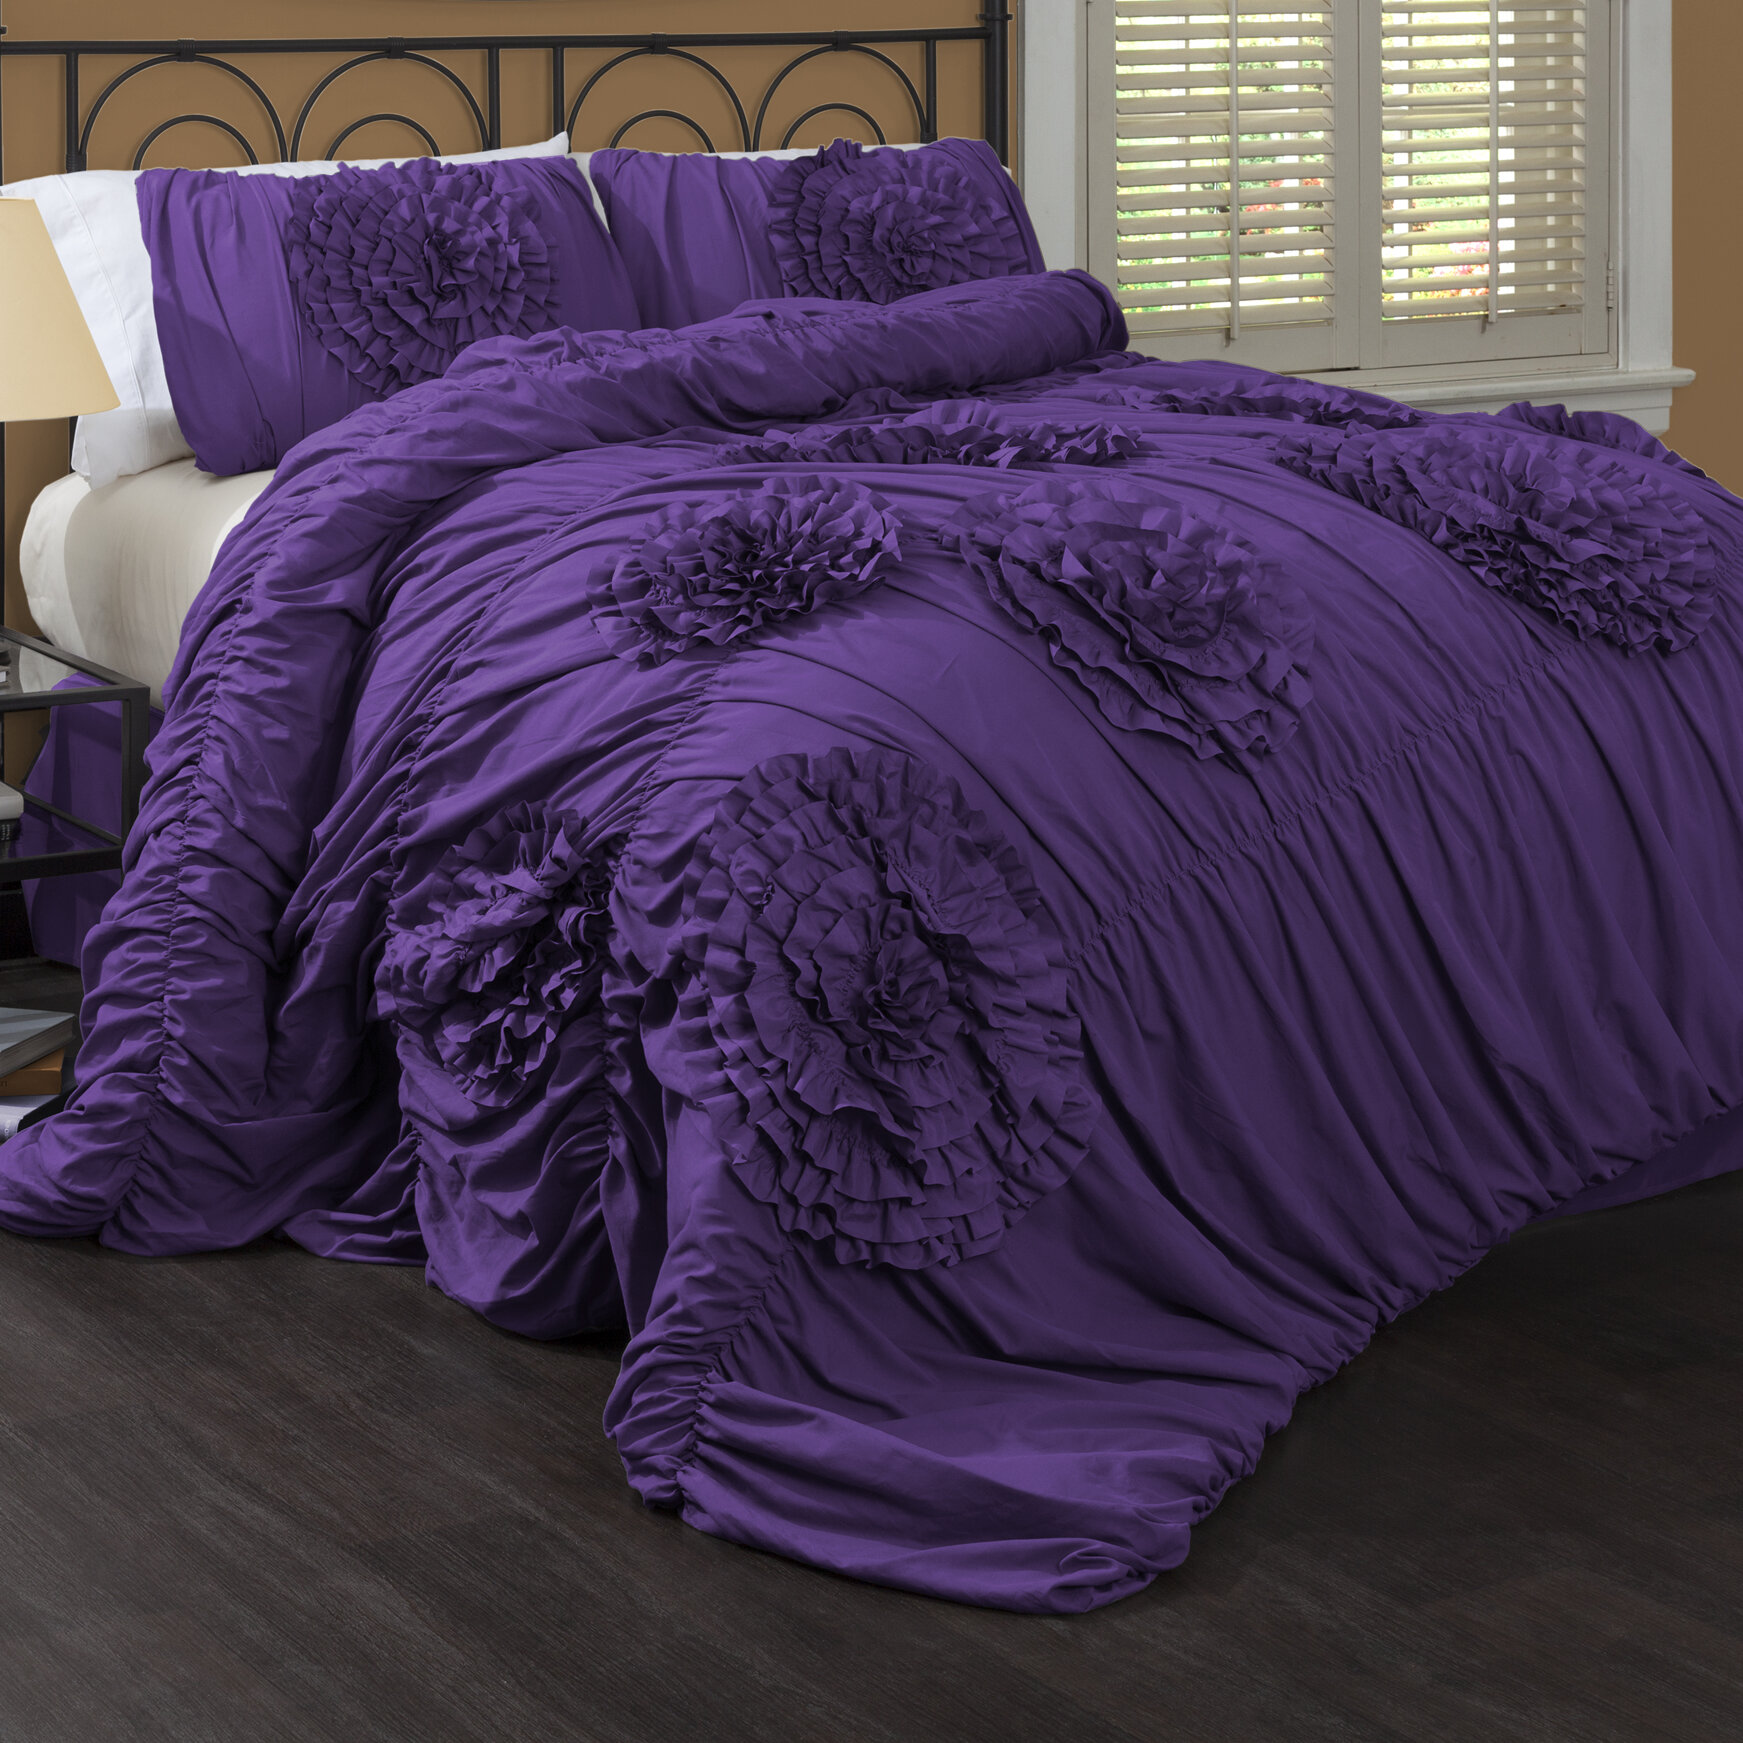 Special Edition Serena Purple Bedding Set